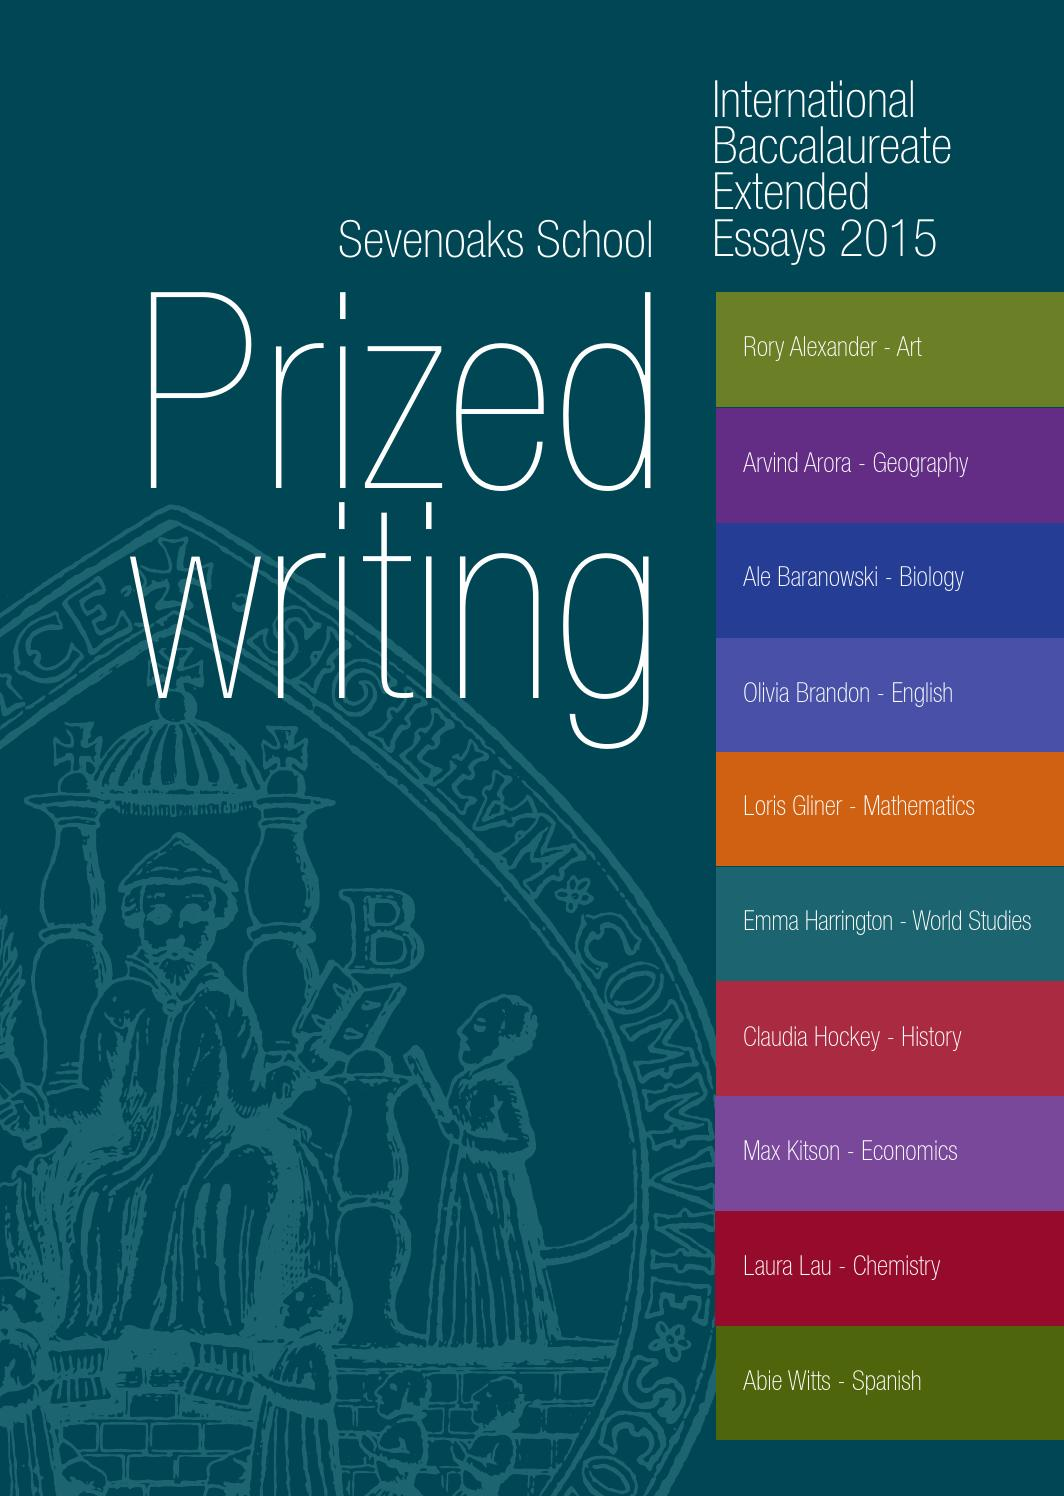 international baccalaureate extended essays